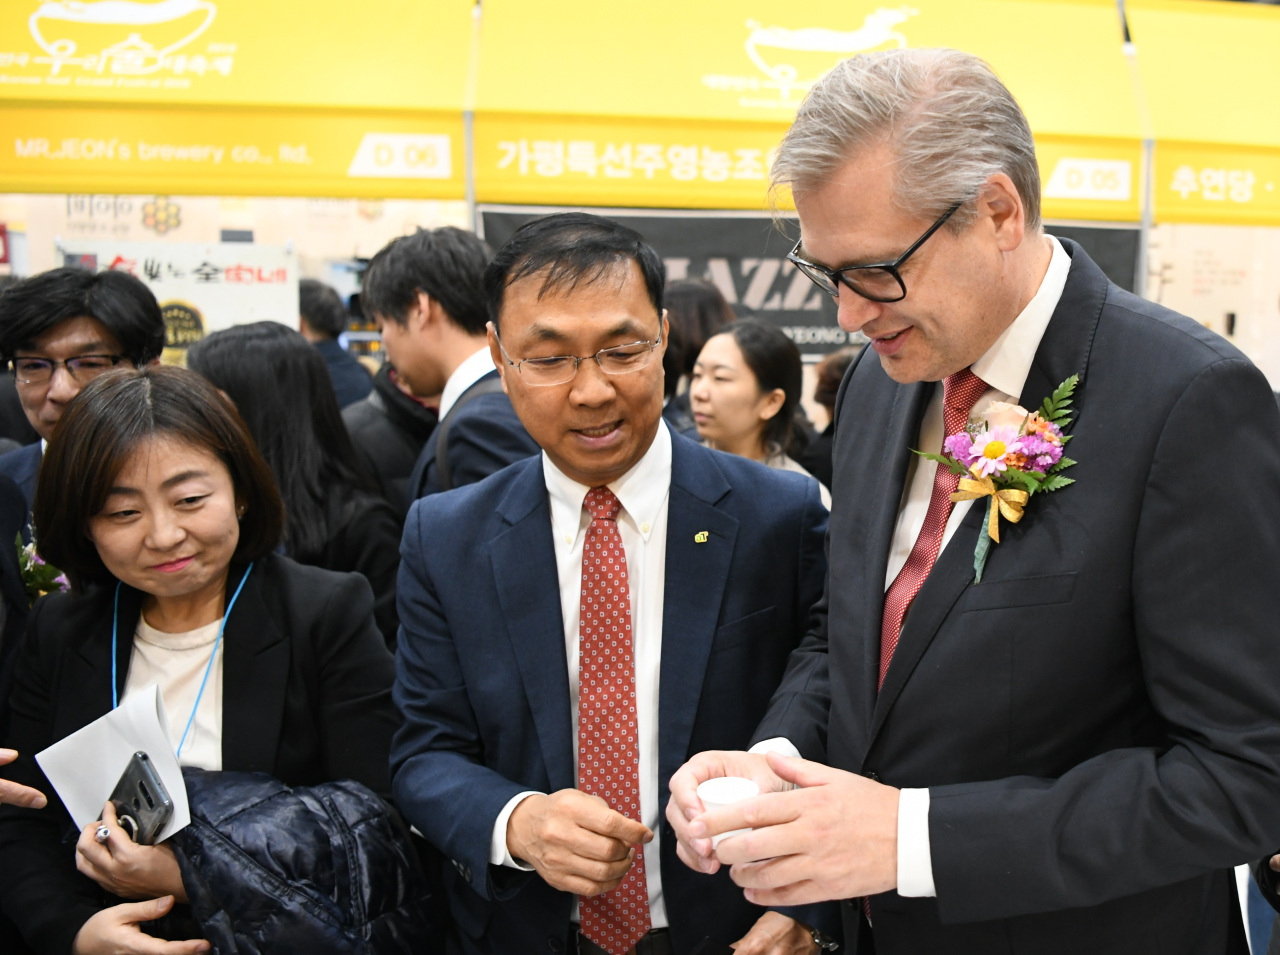 Shin Hyun-gon (center), executive vice president of food industry & export promotion at aT (aT)